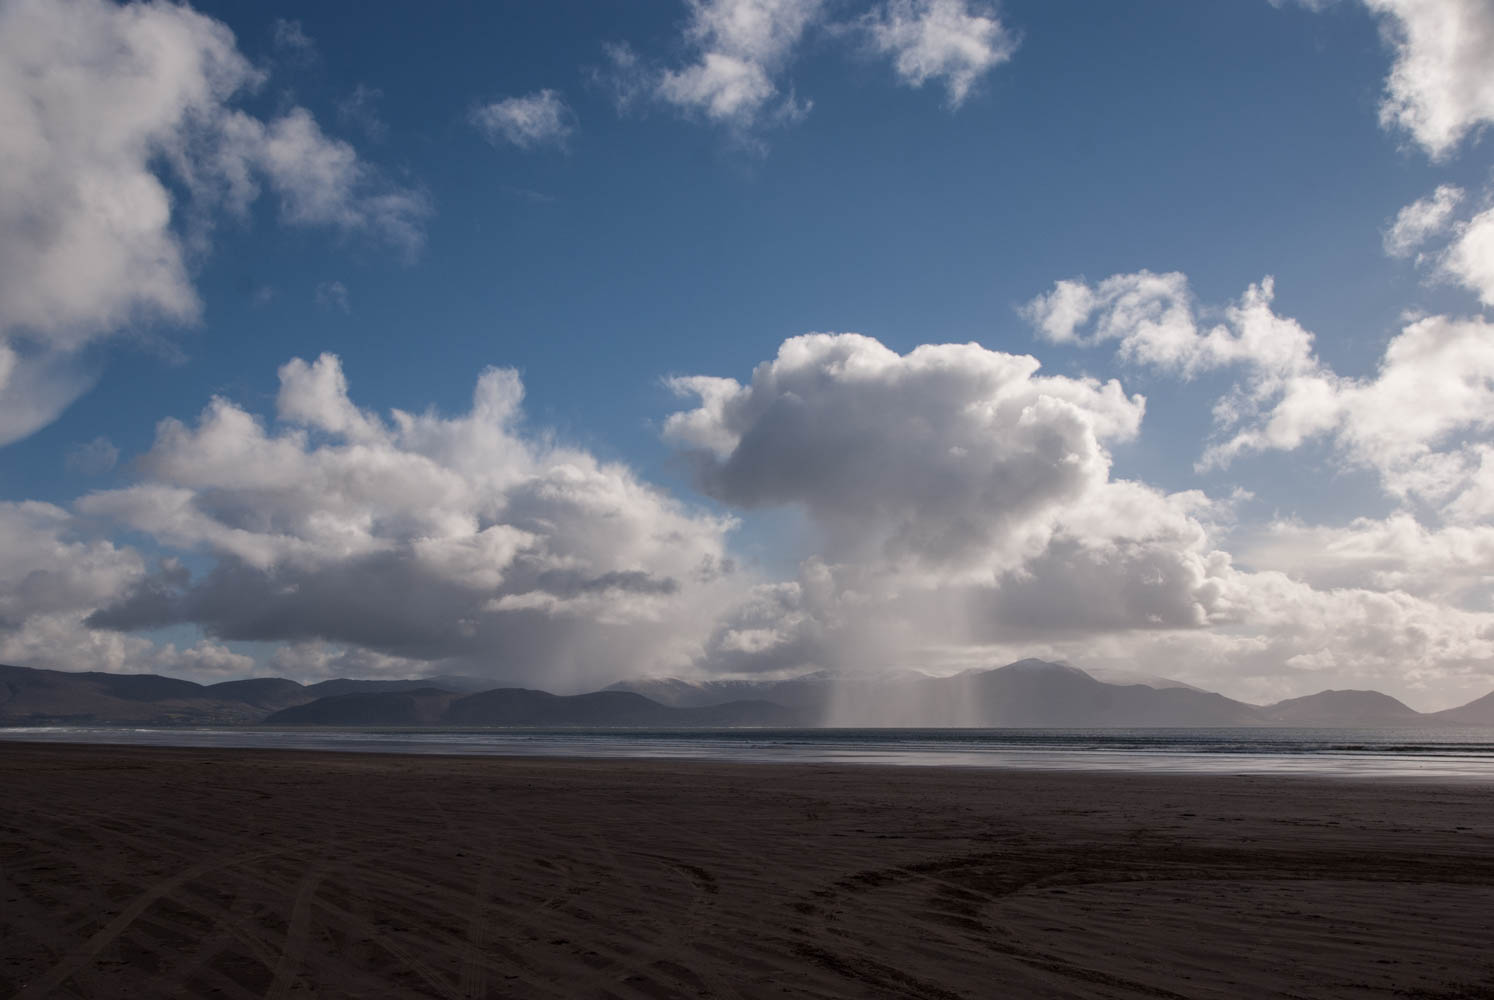 Scattered showers are in the forecast, on the drive to Dingle Peninsula